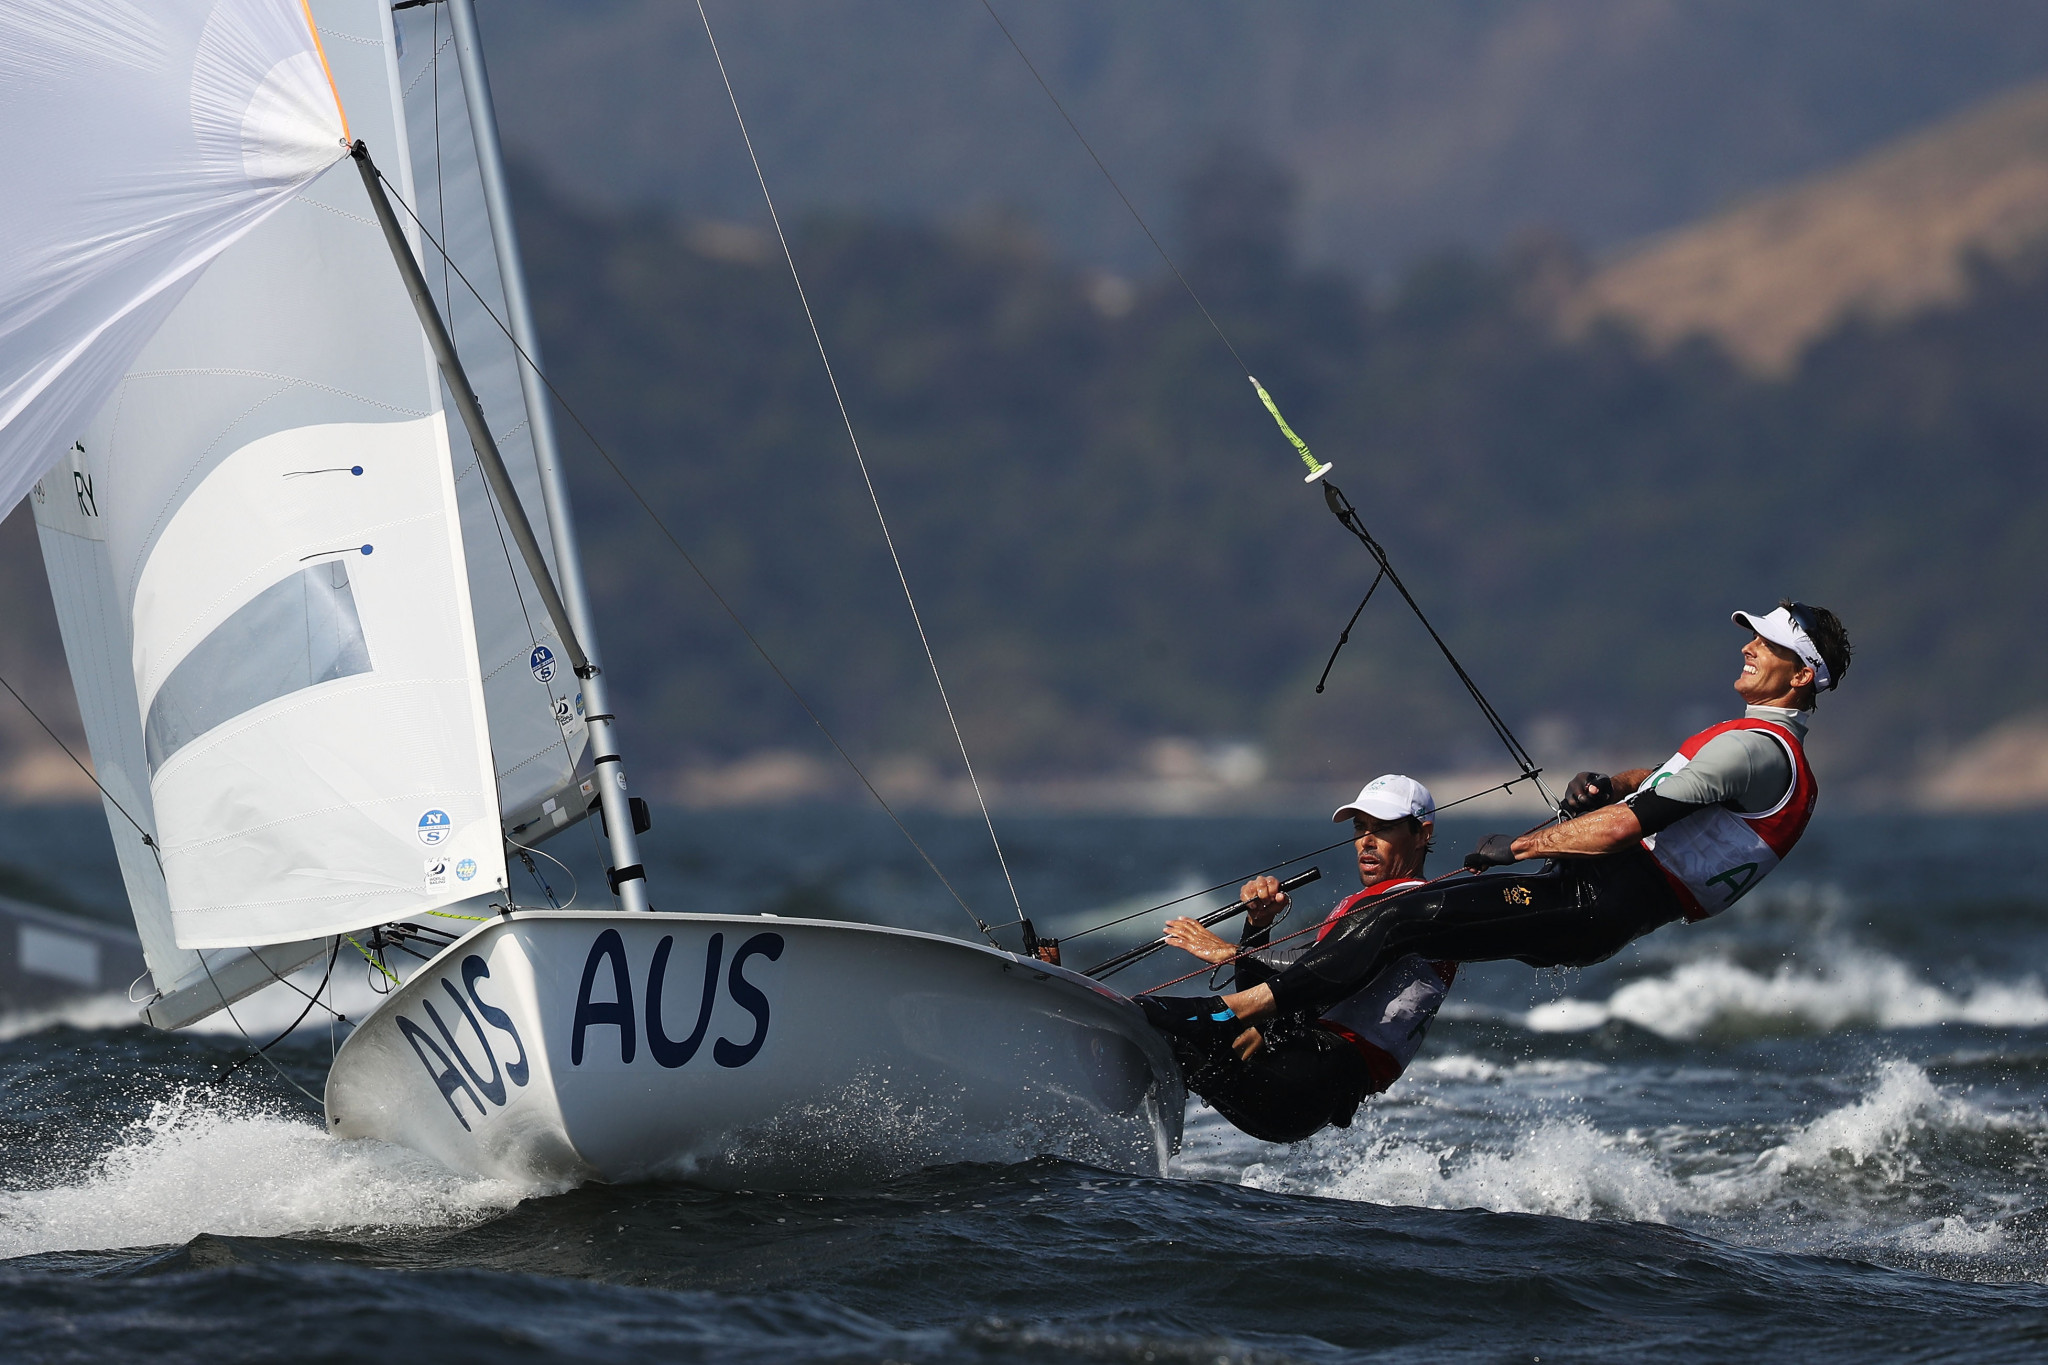 Australia's Mat Belcher and Will Ryan claimed the gold medal in the men's event ©Getty Images